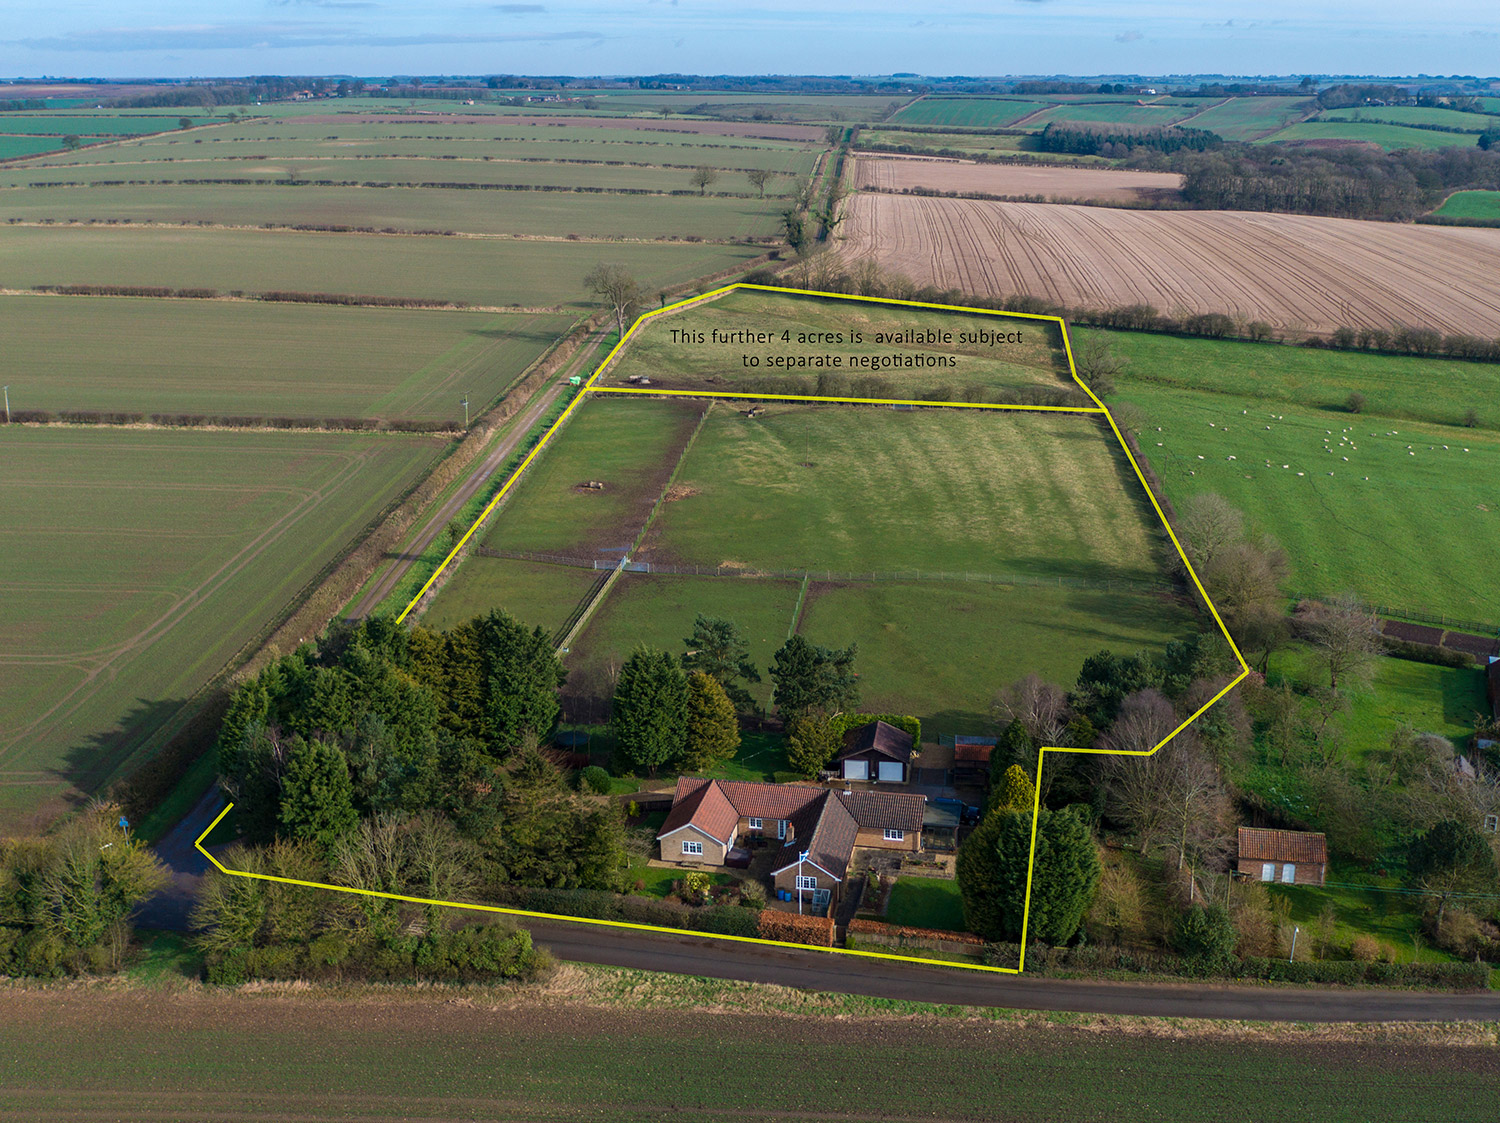 aerial view for estate agent